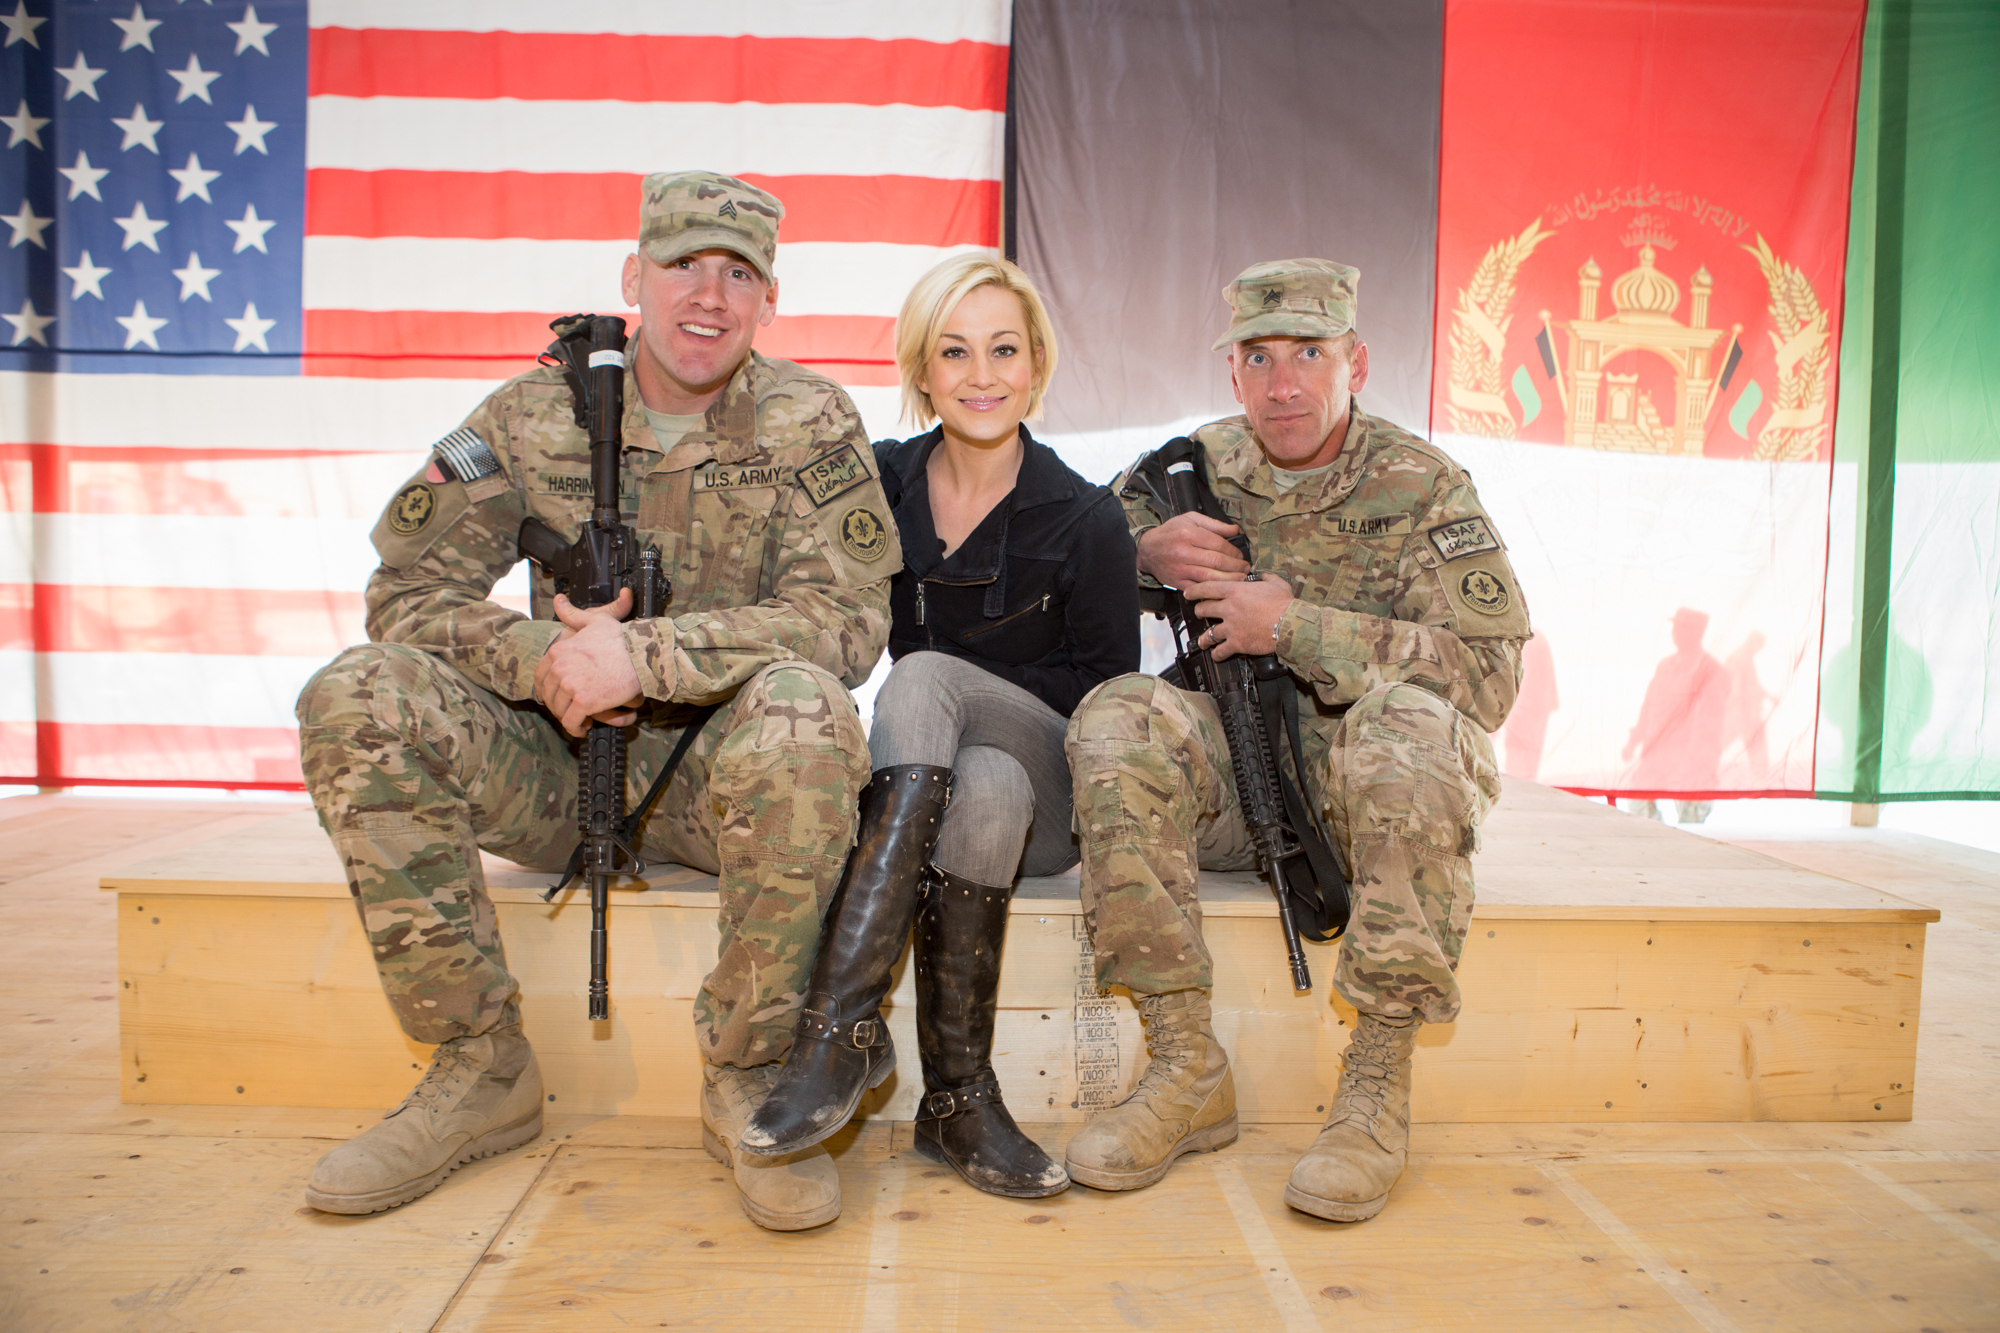 Country music singer Kellie Pickler poses alongside Sgt. Jeremy Harrington, left, and Sgt. Robert Epley, who built the stage the trio is sitting on for Pickler's performance at Forward Operating Base Walton, Afghanistan. USO photo by Eric Raum